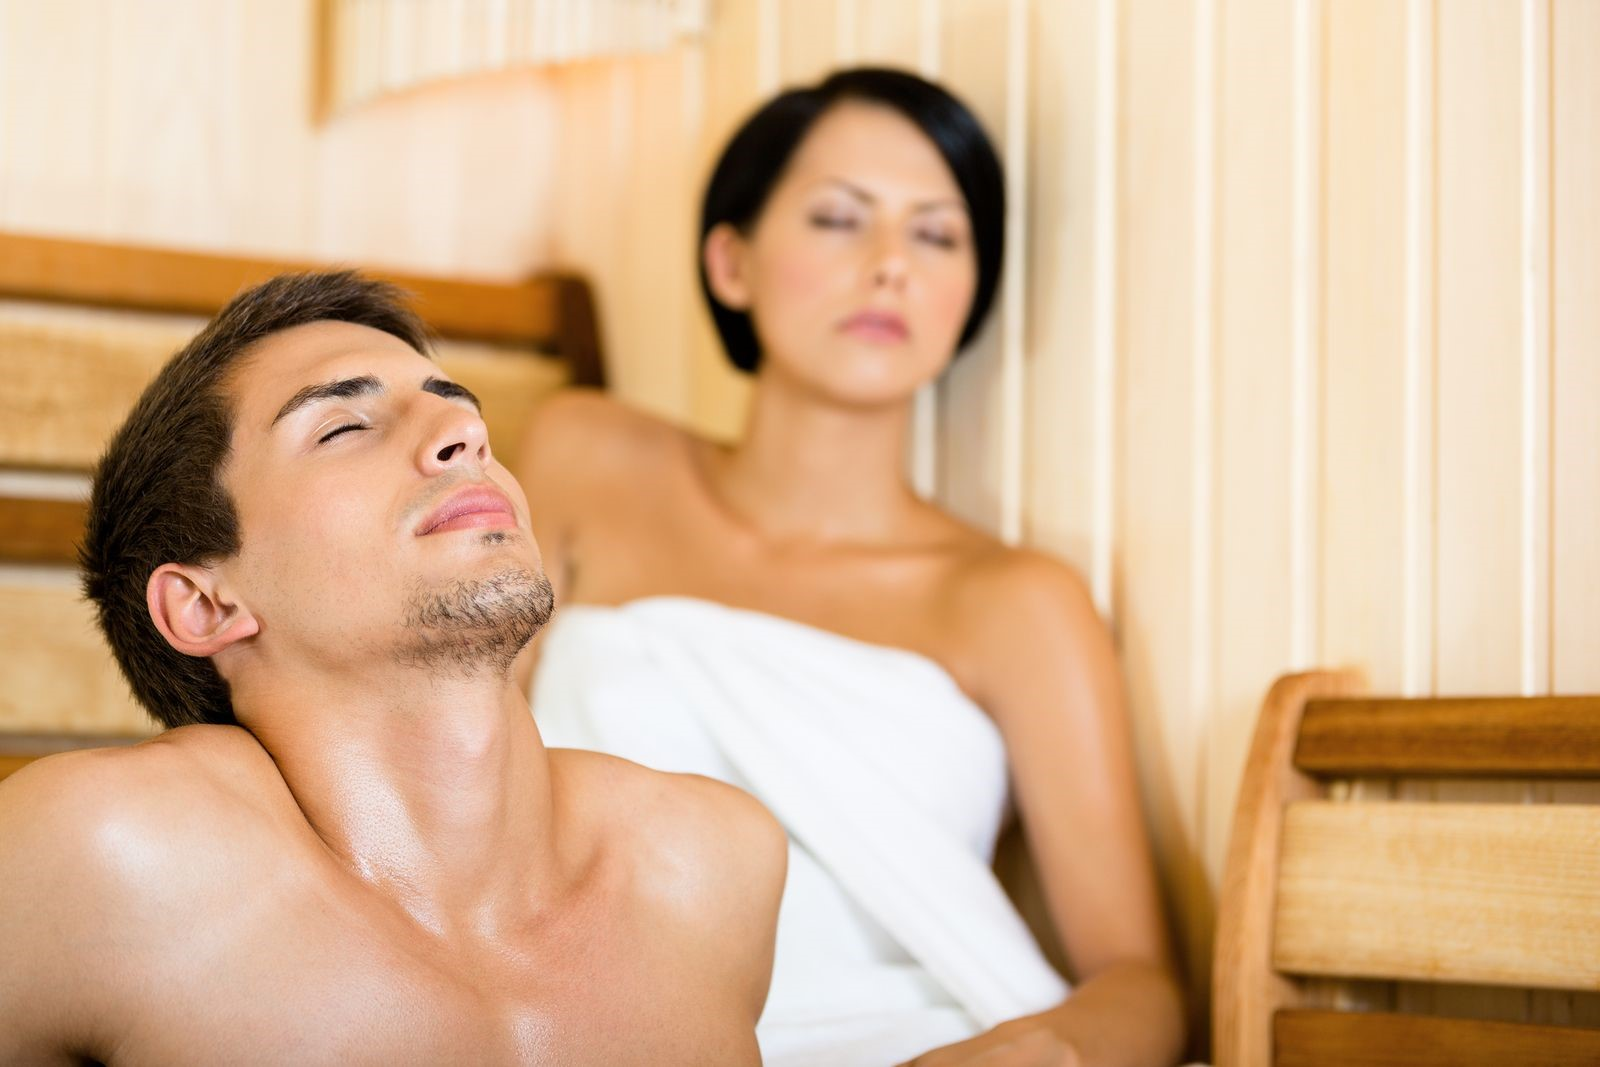 A Home Infrared Sauna is a Healthy Way to Sweat Out Harmful Toxins